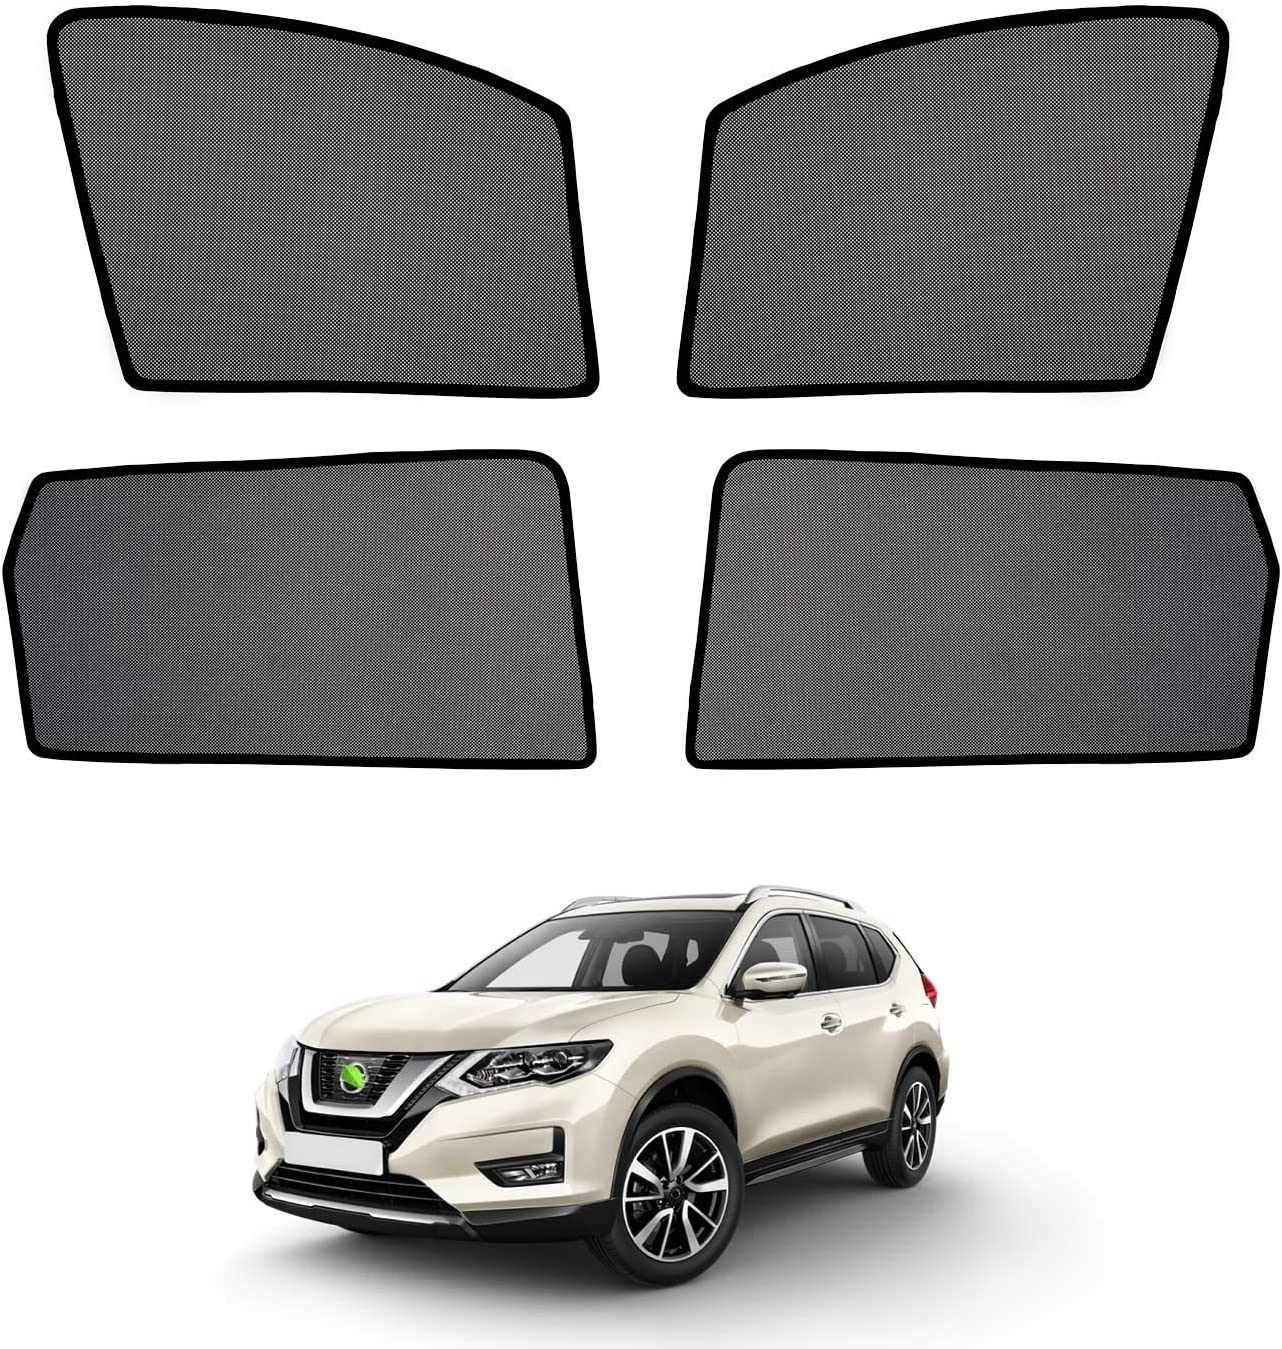 Cartist Car Side Window Sunshades famous Rogue Nissan Tampa Mall 2014-2020 for